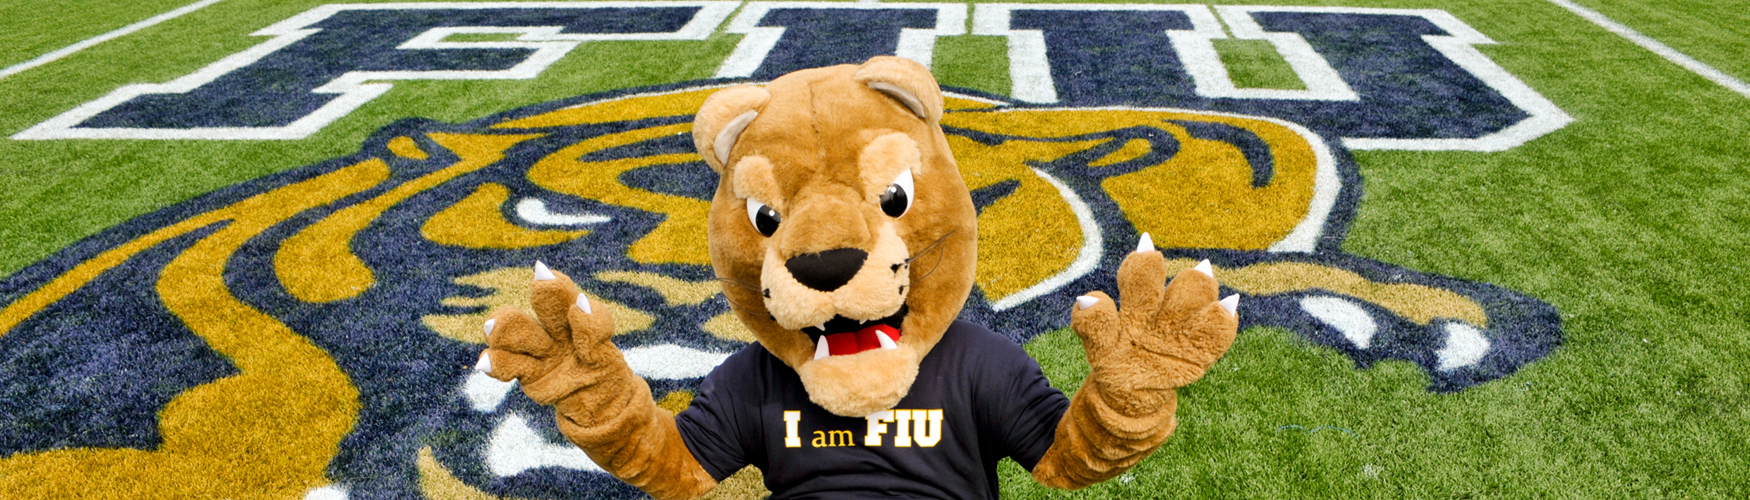 Roary mascot on football field